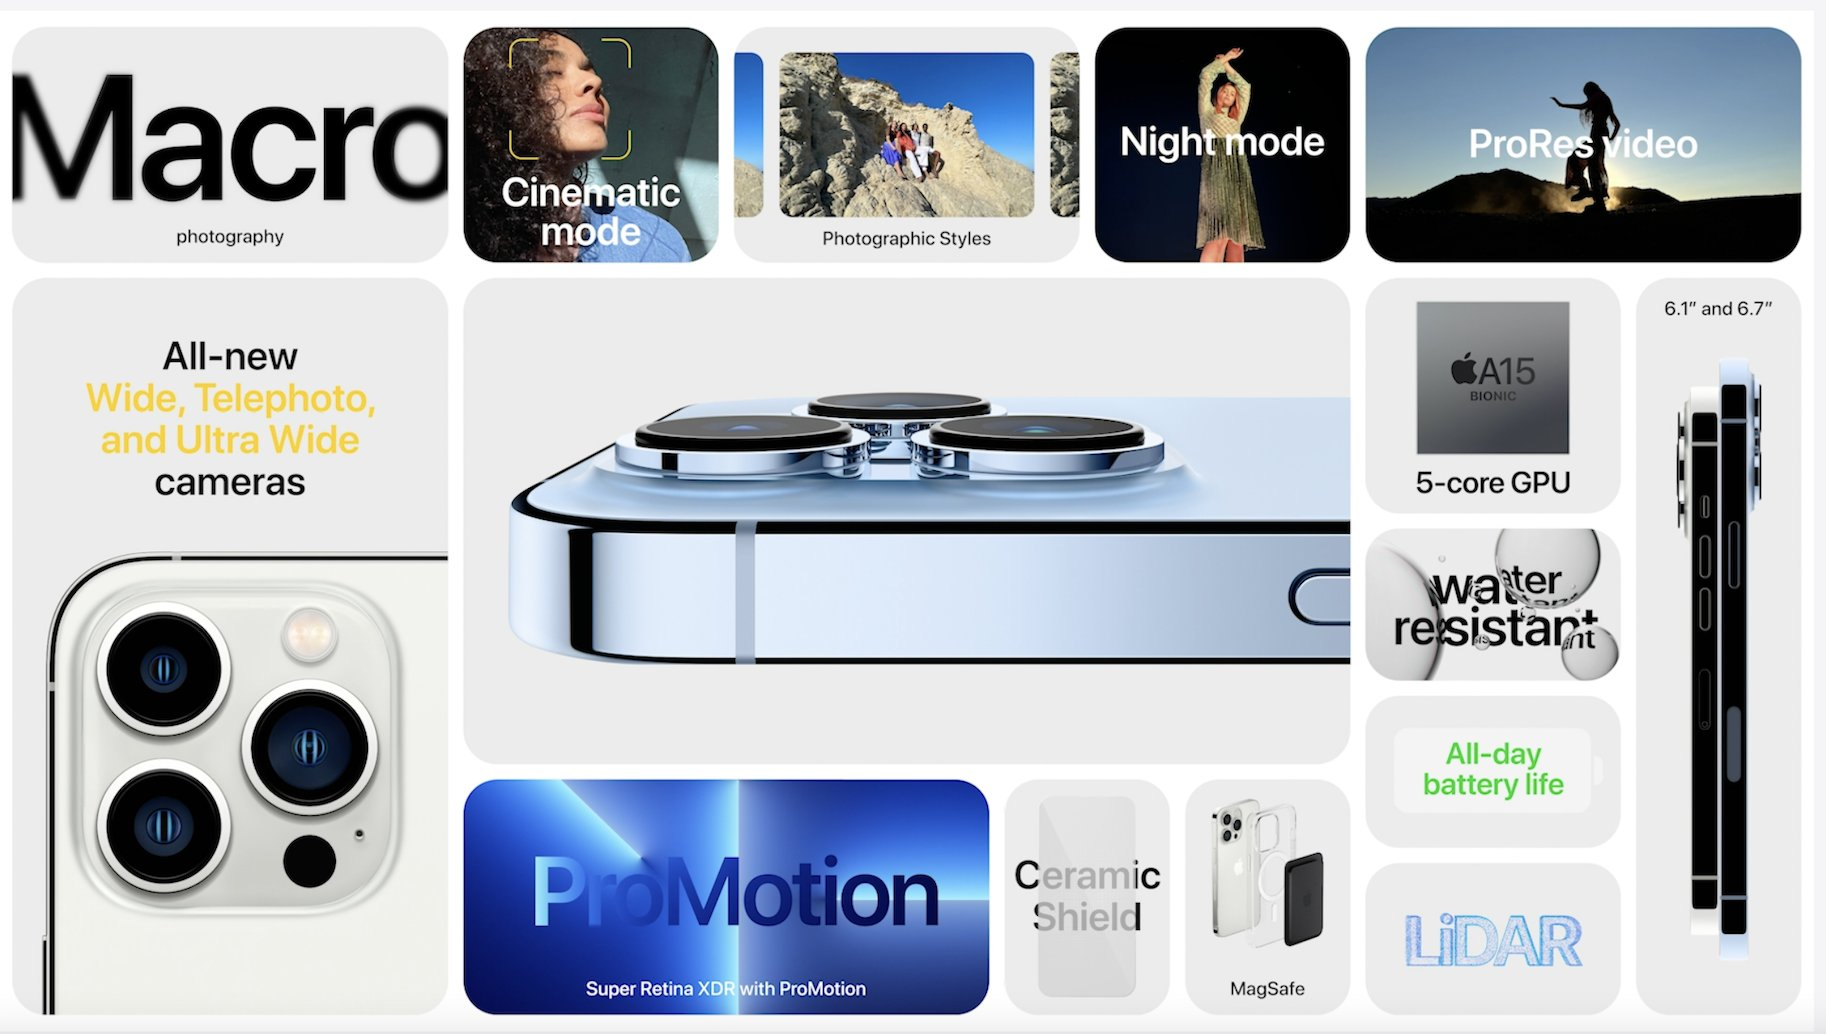 E Q KmvVUAEskHt?format=jpg&name=large - Apple unveils powerful new iPhone 13 Pro and iPhone 13 Pro max